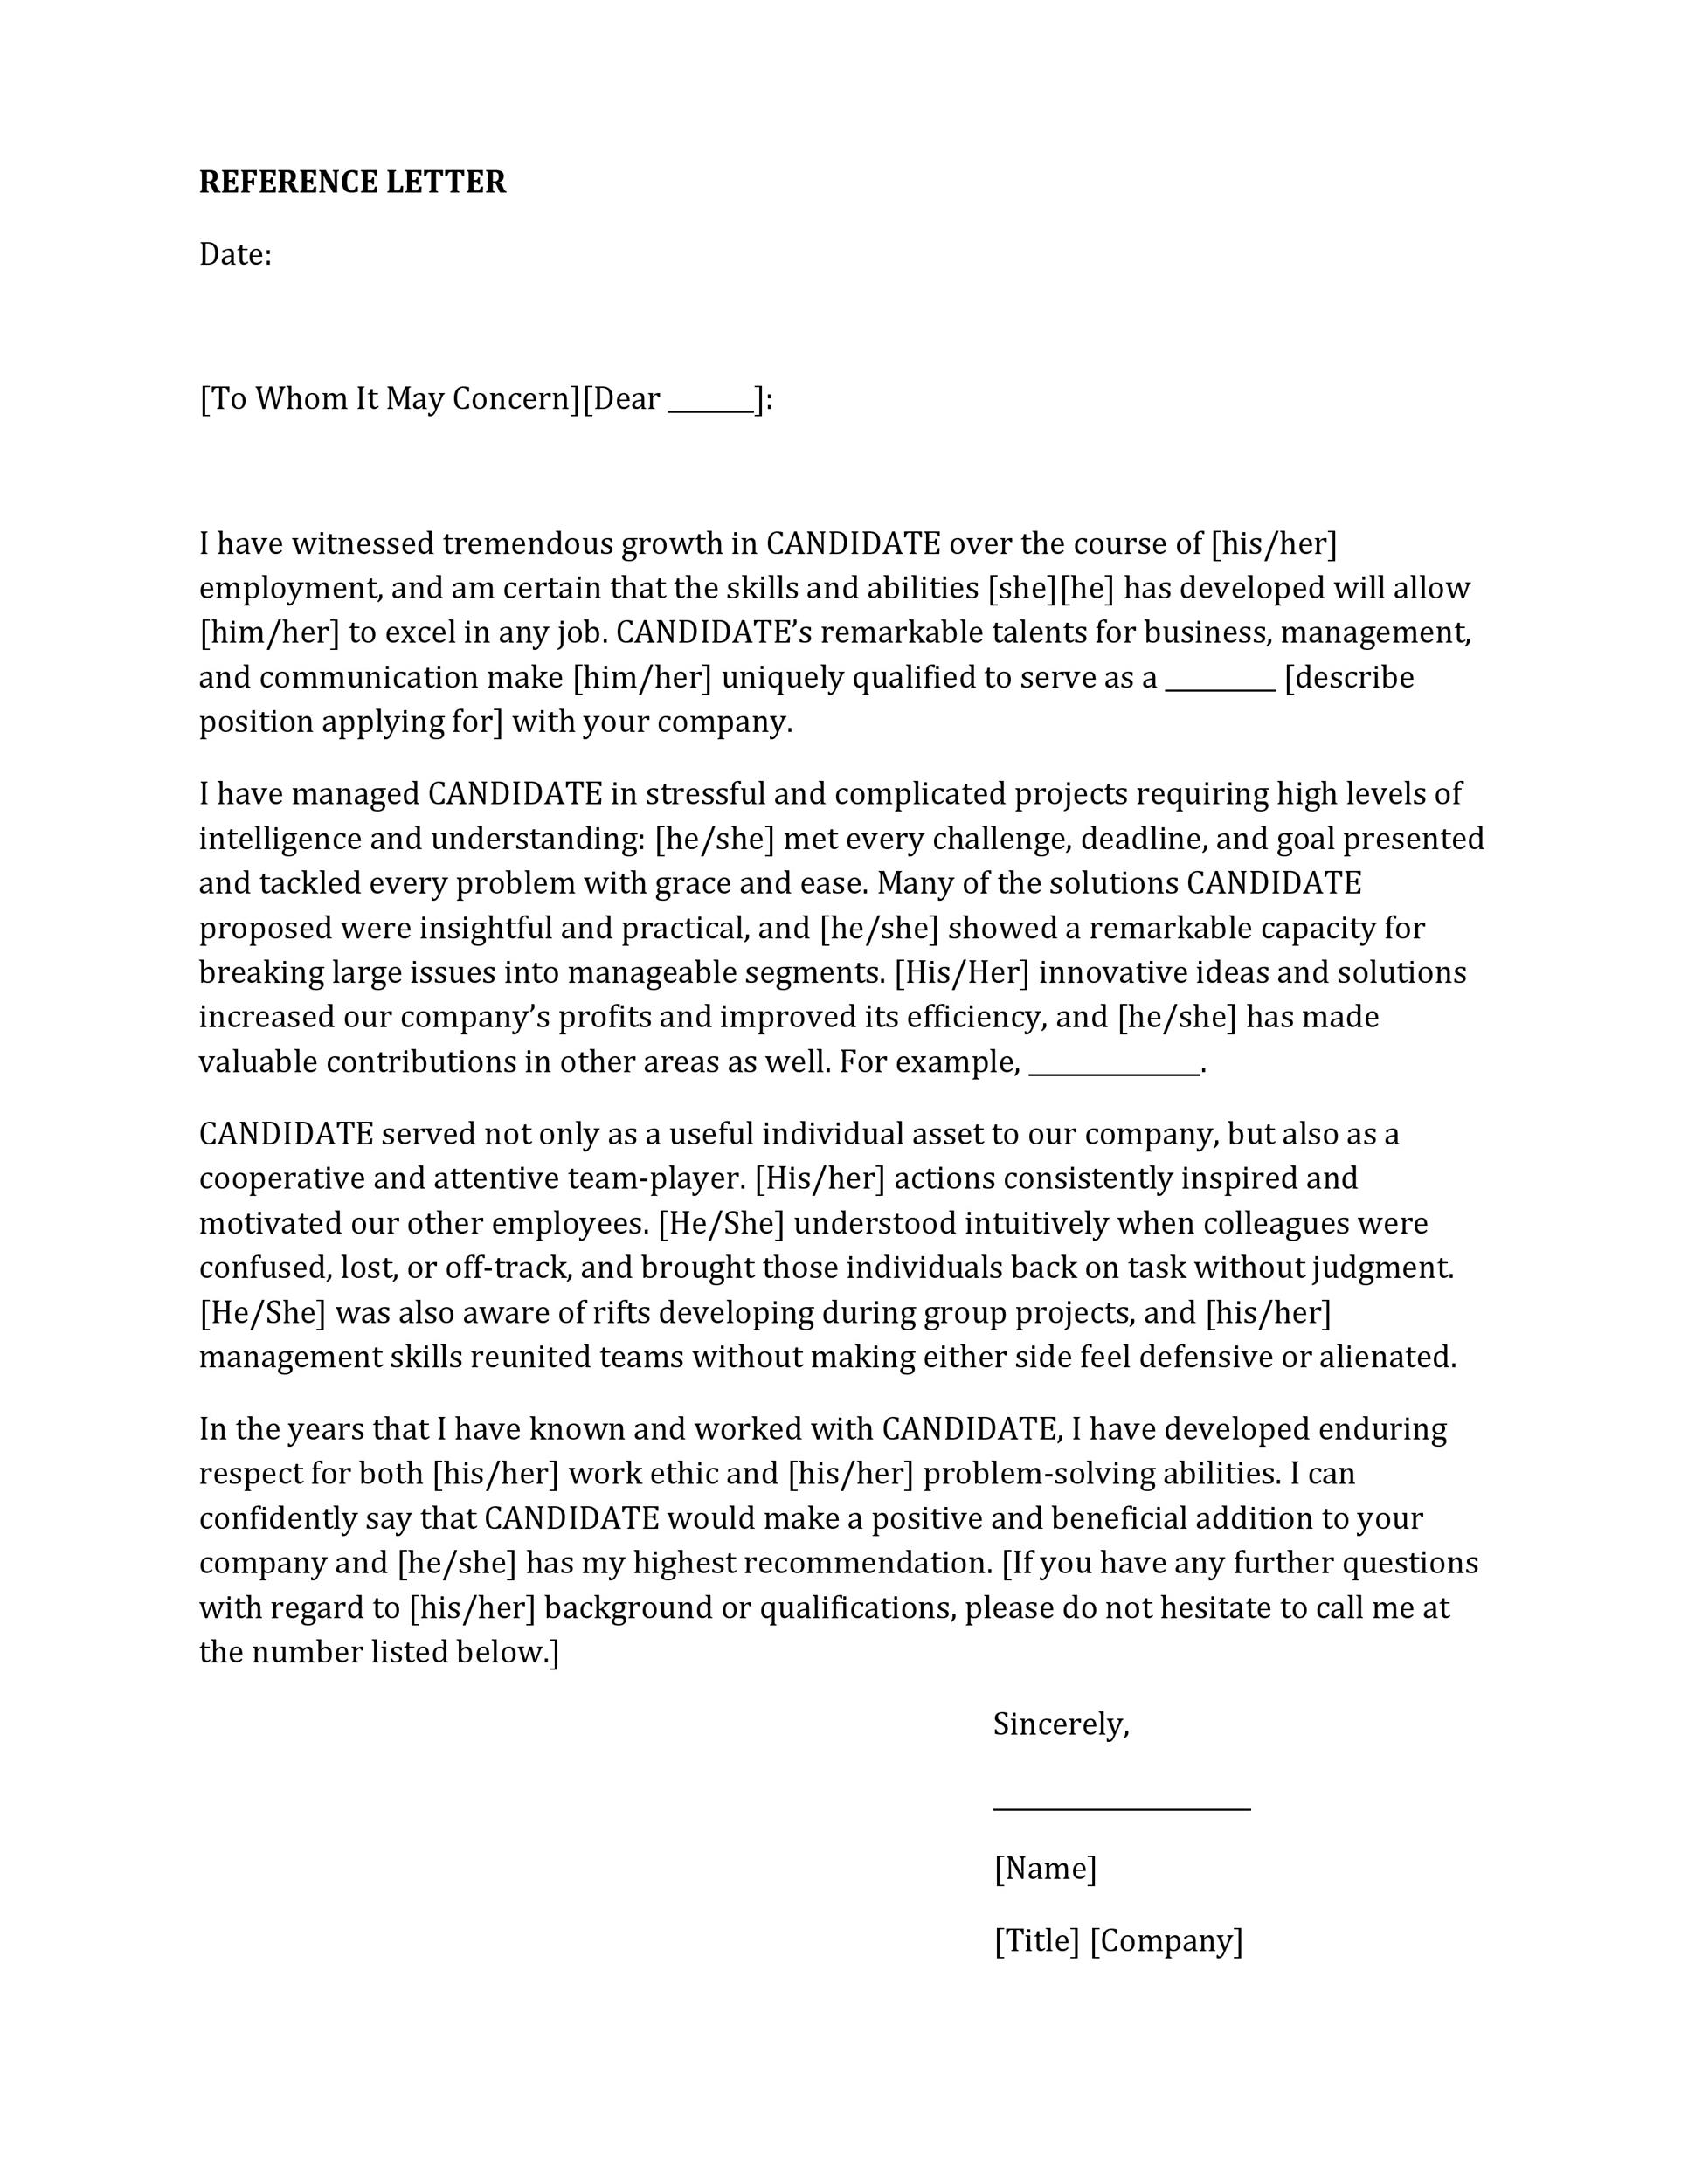 Printable Reference Letter 01  Personal Reference Letter For A Job